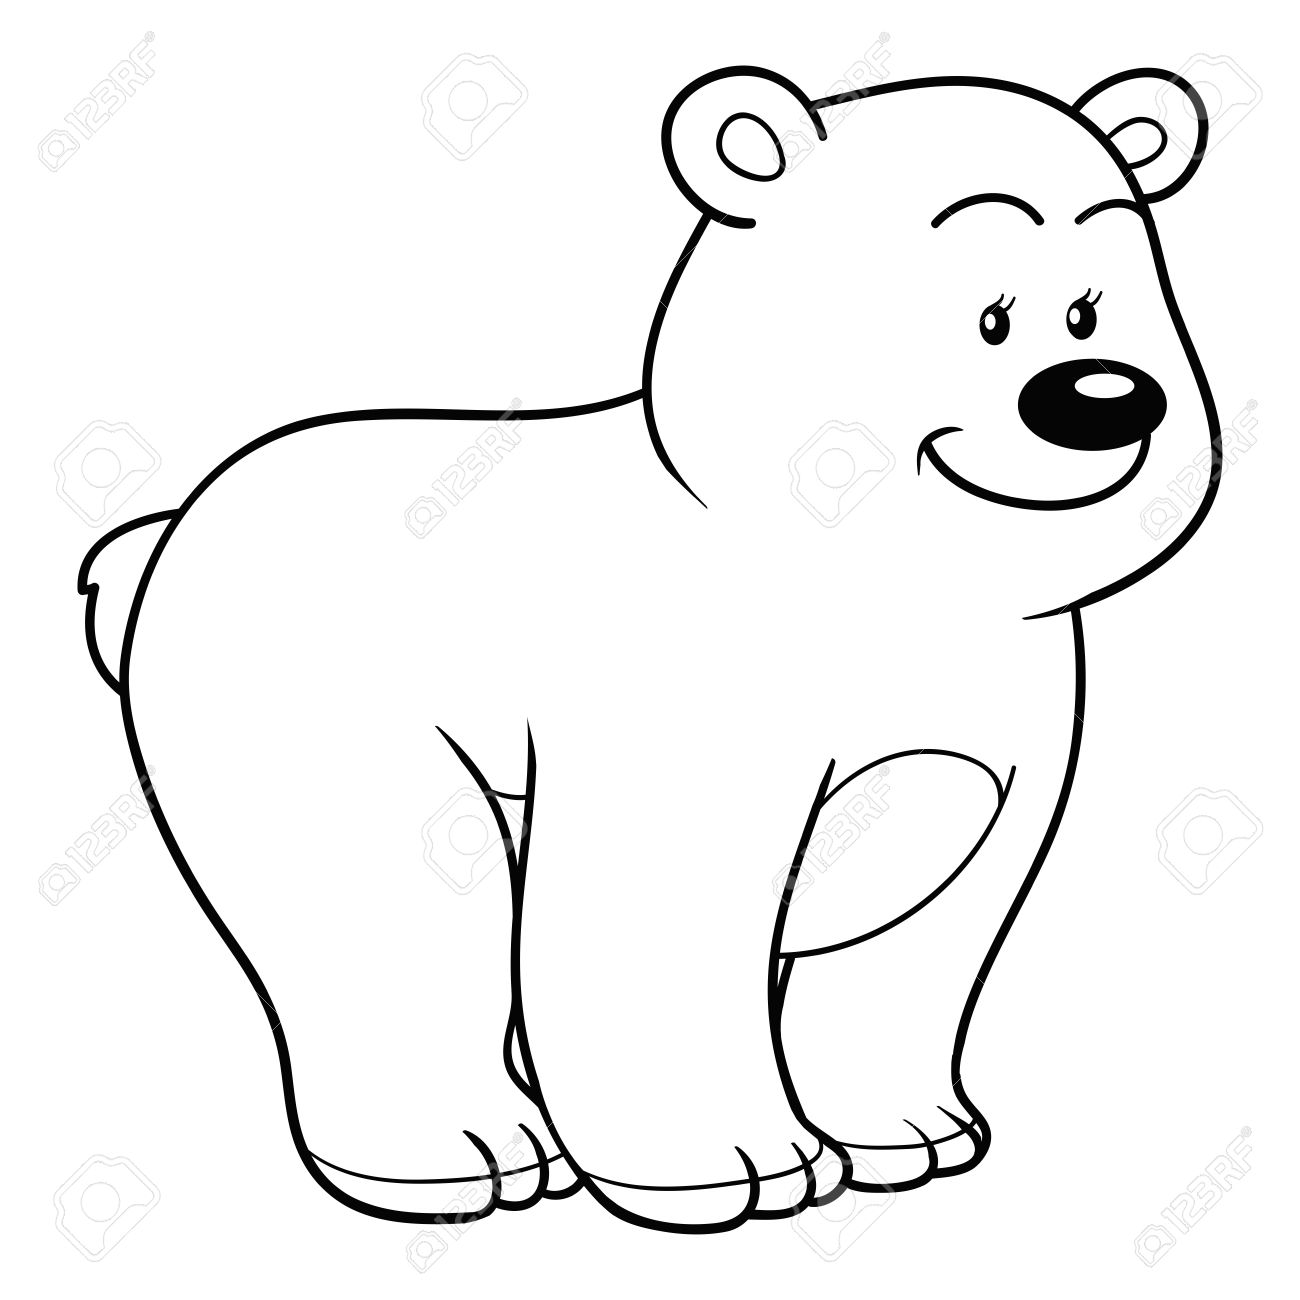 Coloring Book (bear) Royalty Free Cliparts, Vectors, And Stock ...